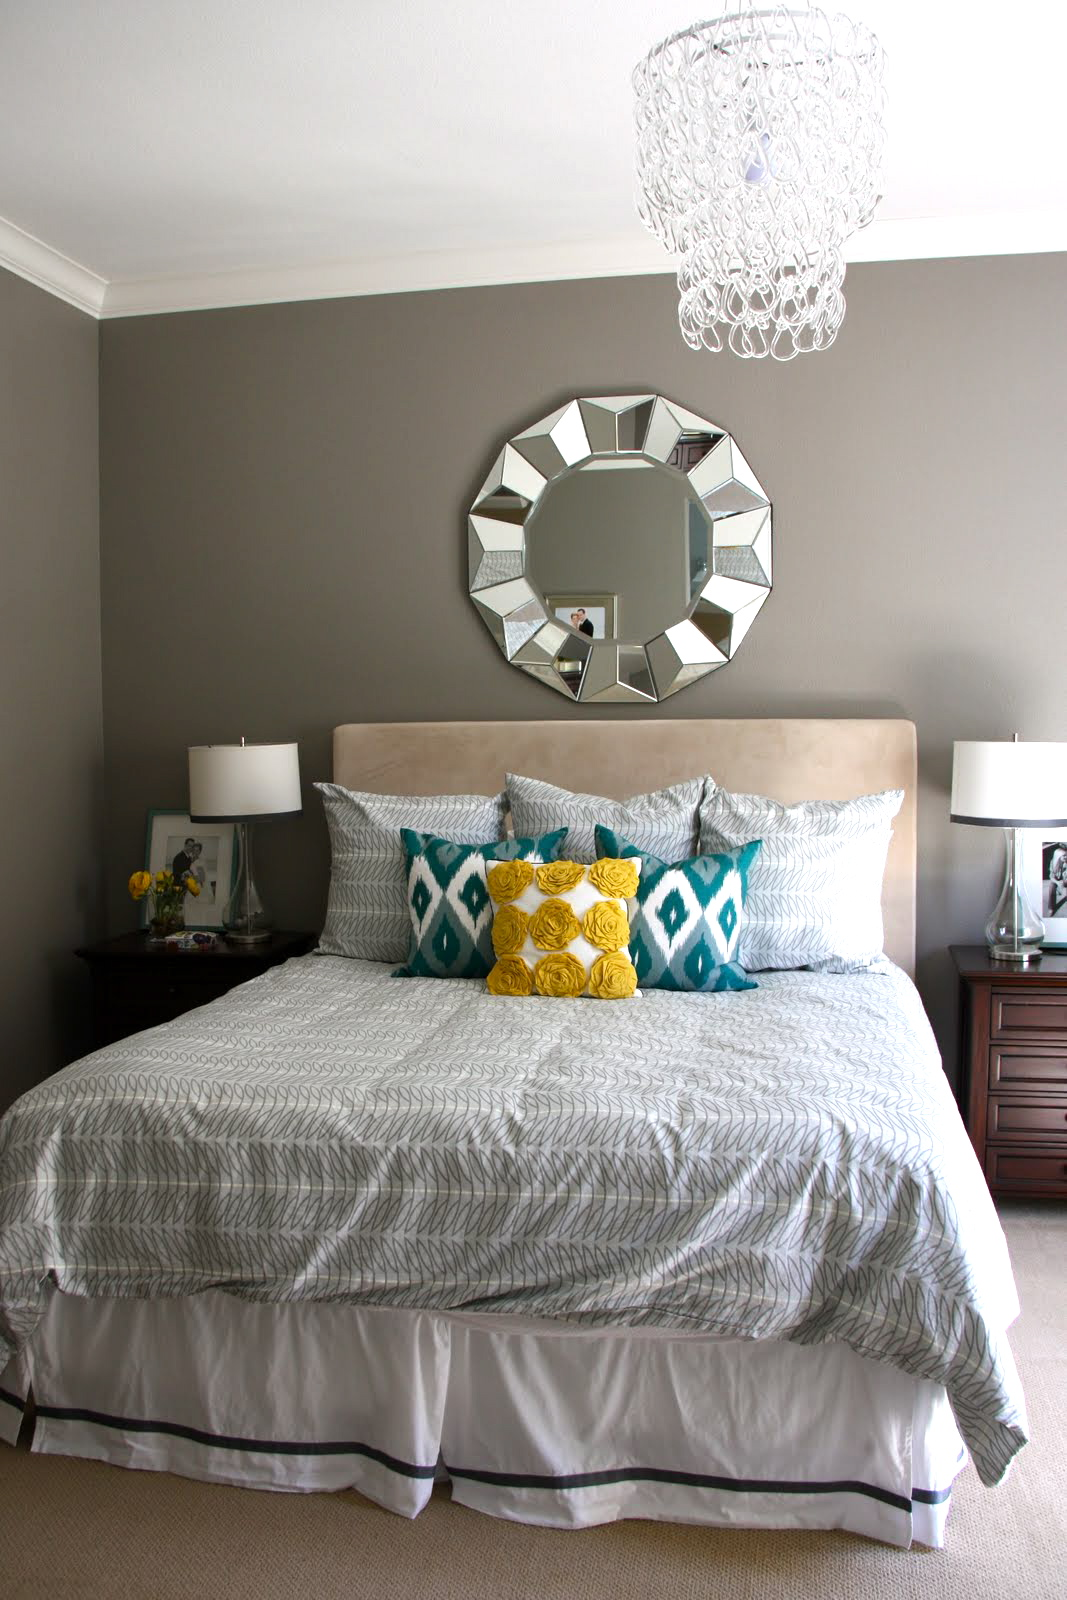 6th Street Design School | Kirsten Krason Interiors : E-Design ...